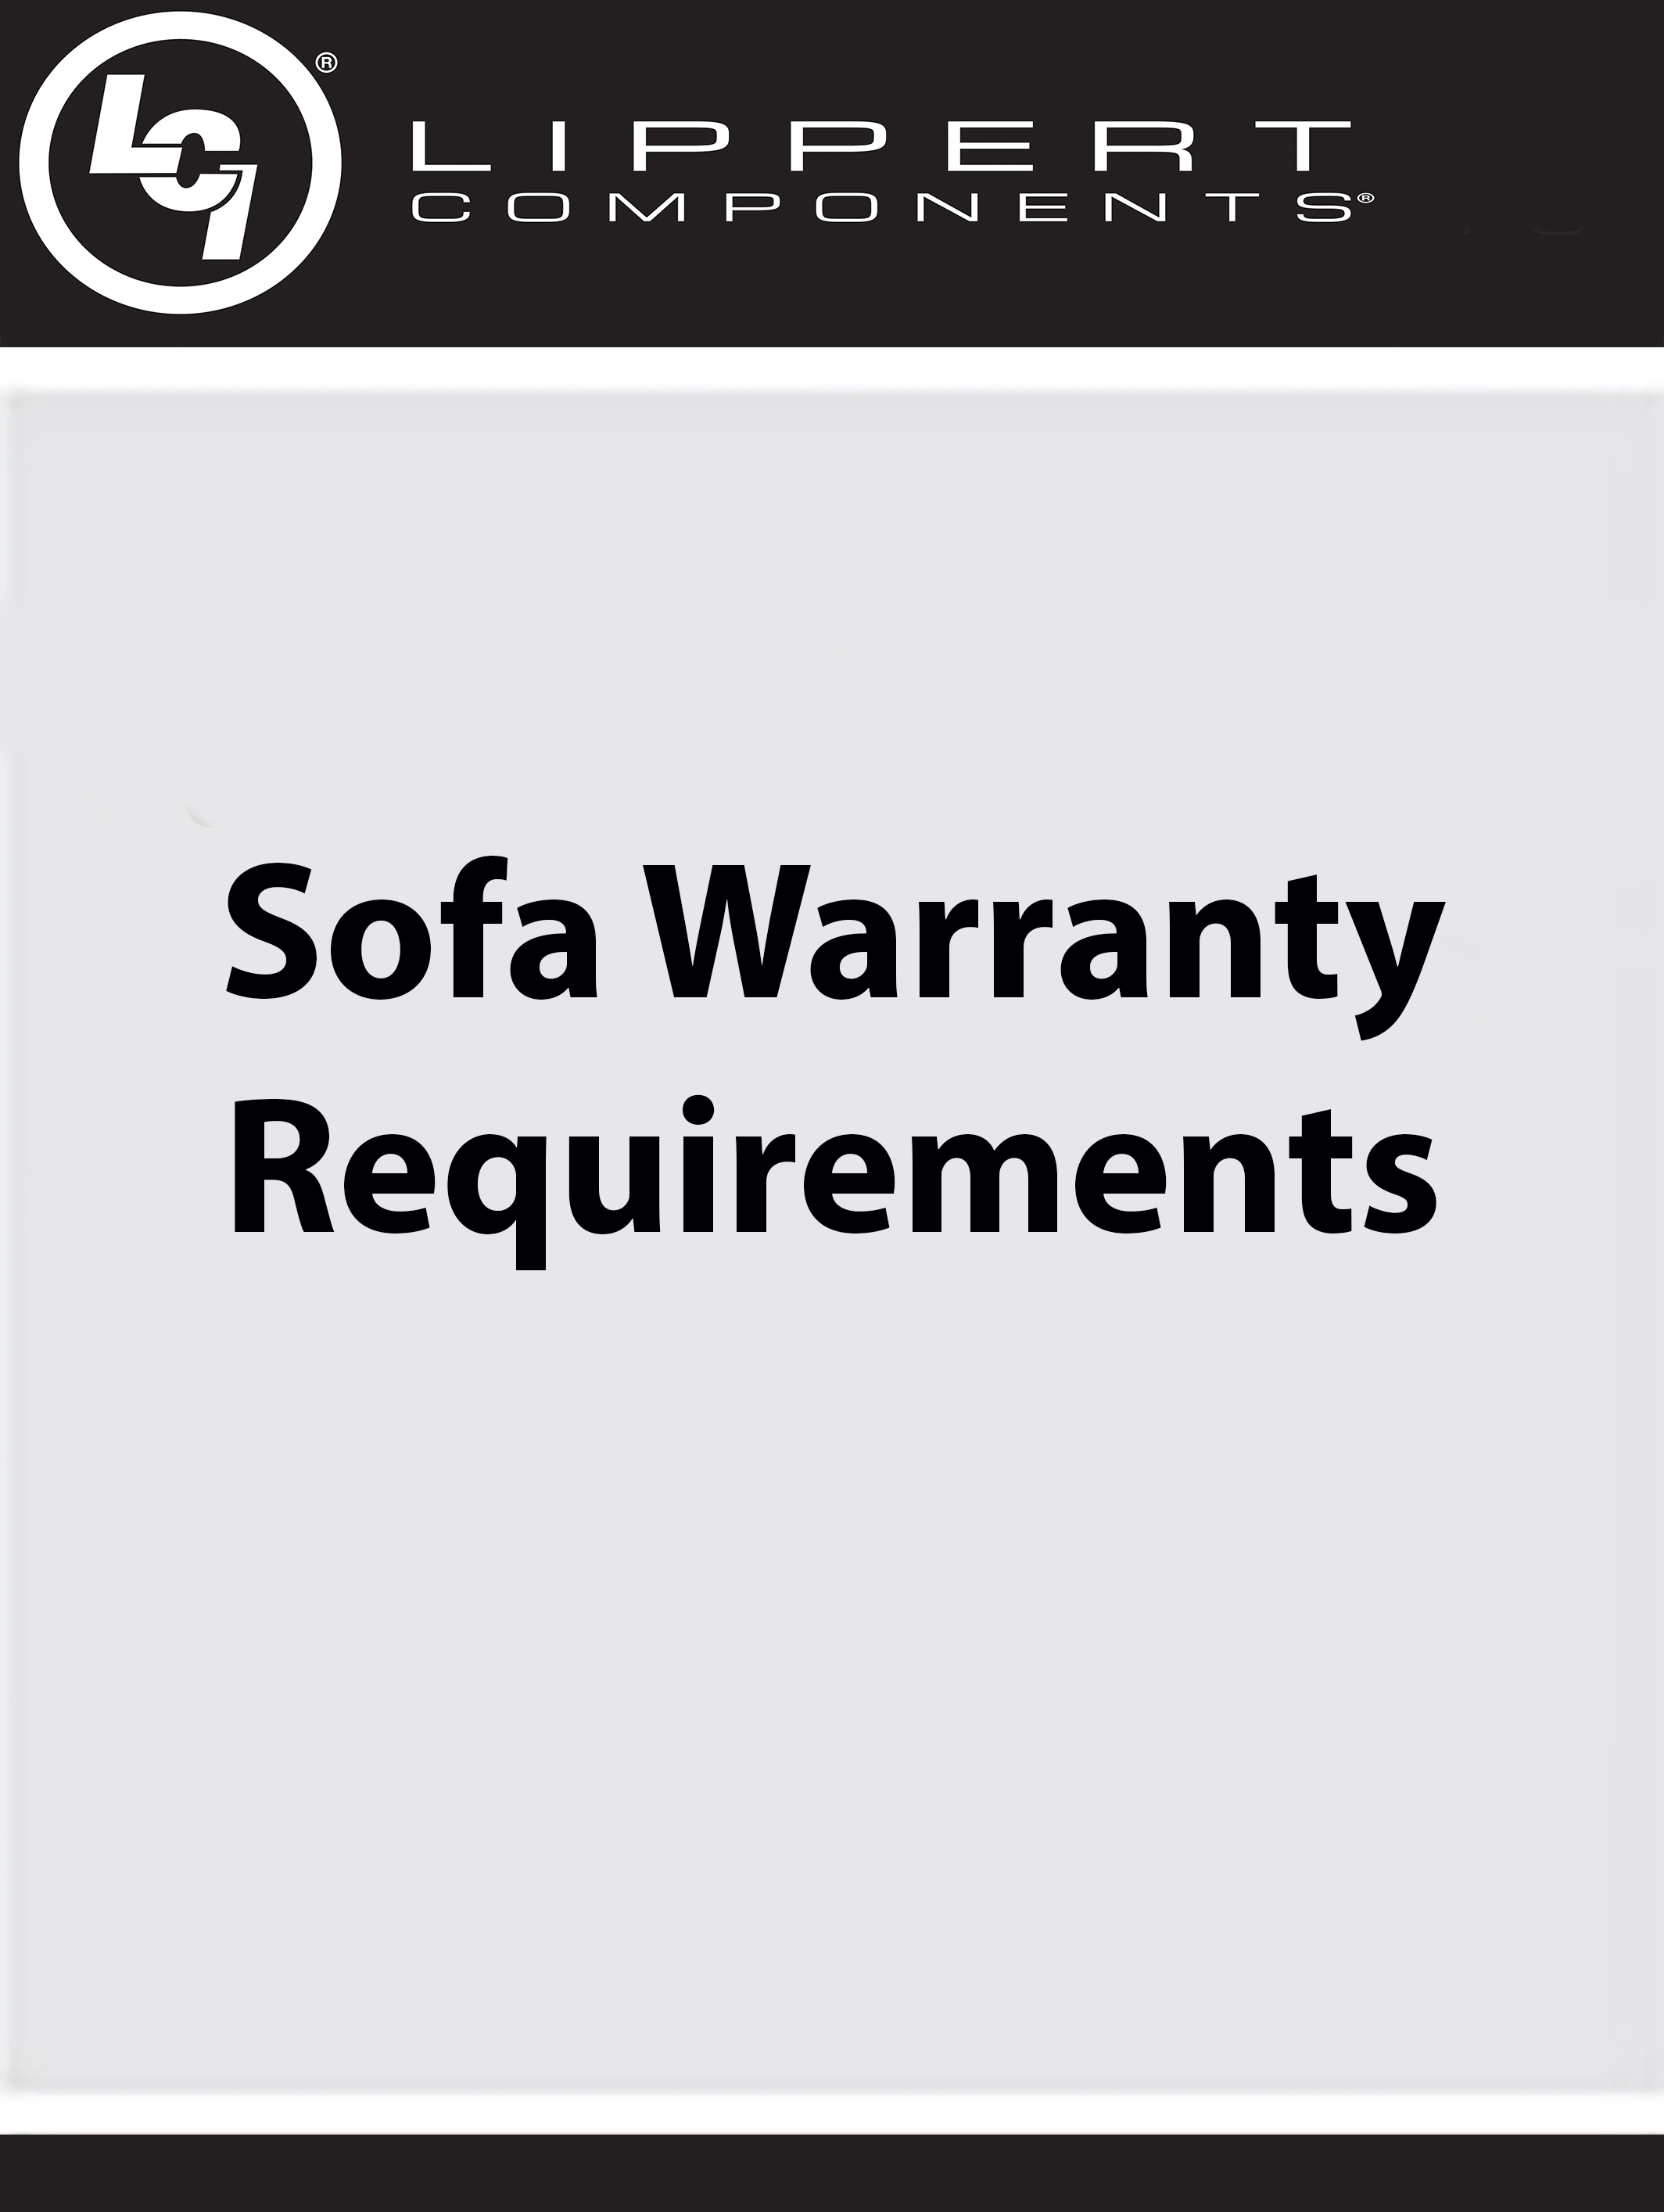 Sofa Warranty Requirements